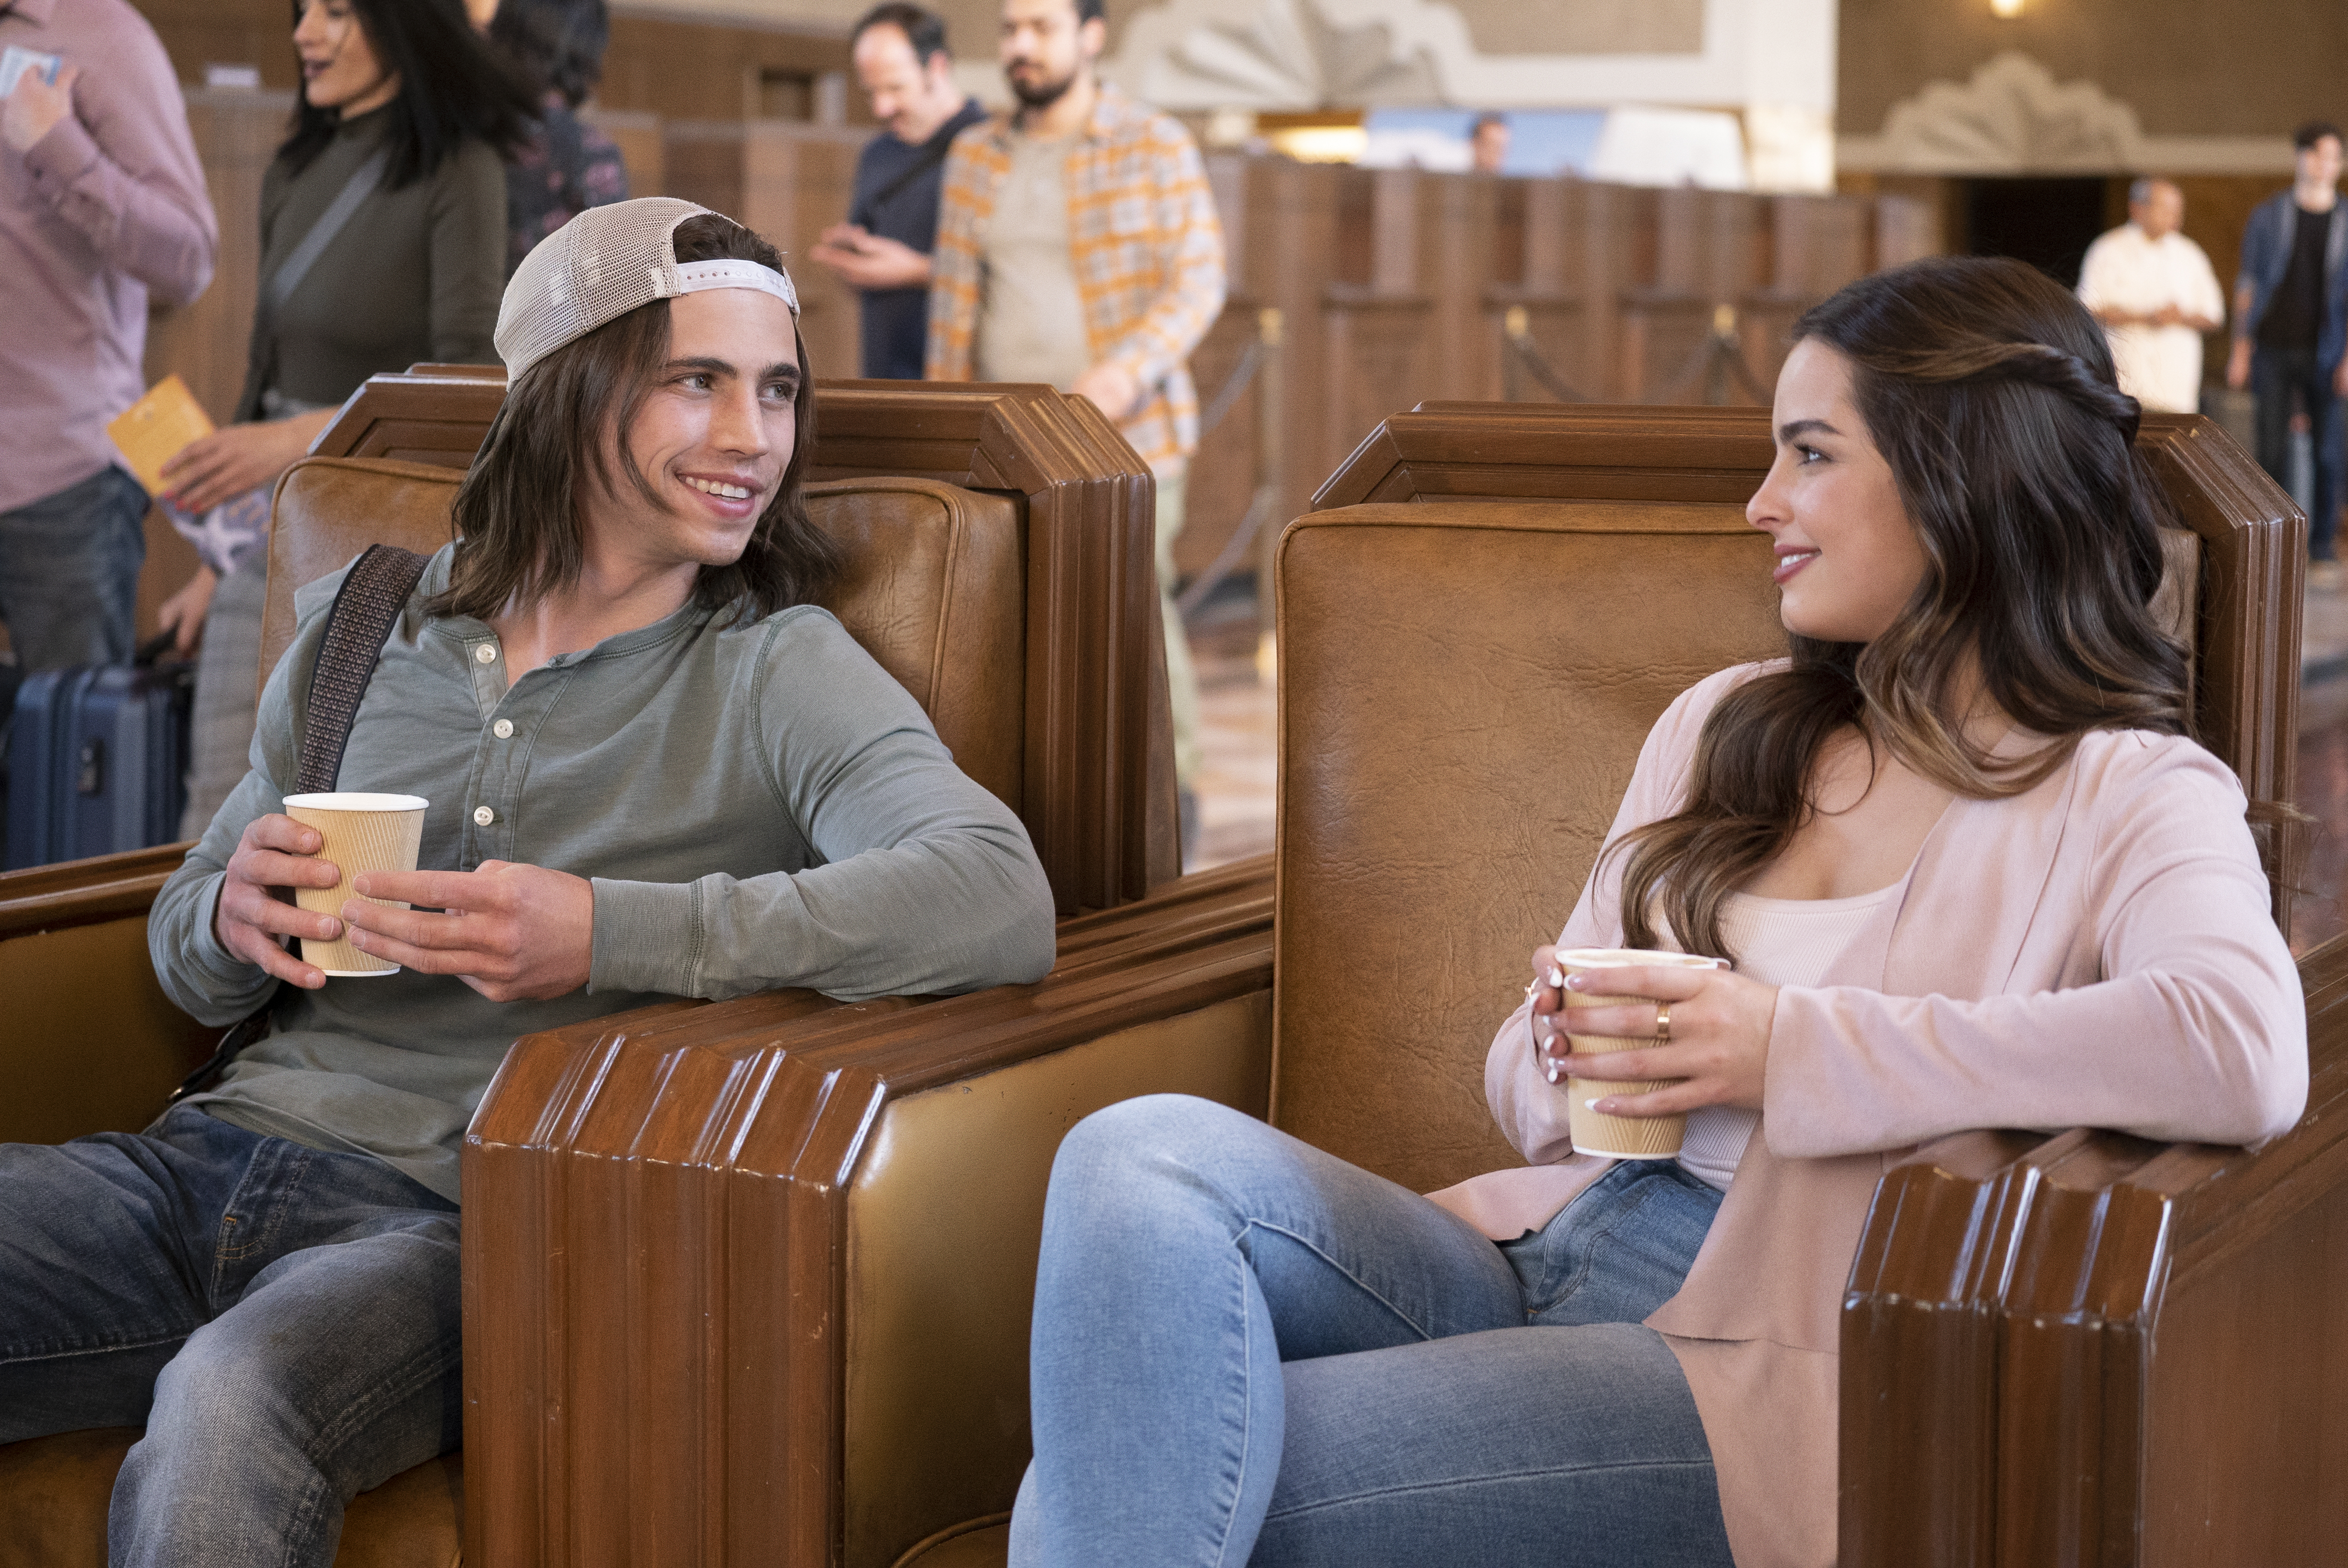 Netflix have released the official trailer for the upcoming romantic comedy He's All That, a reimagining of the teen comedy She's All That.